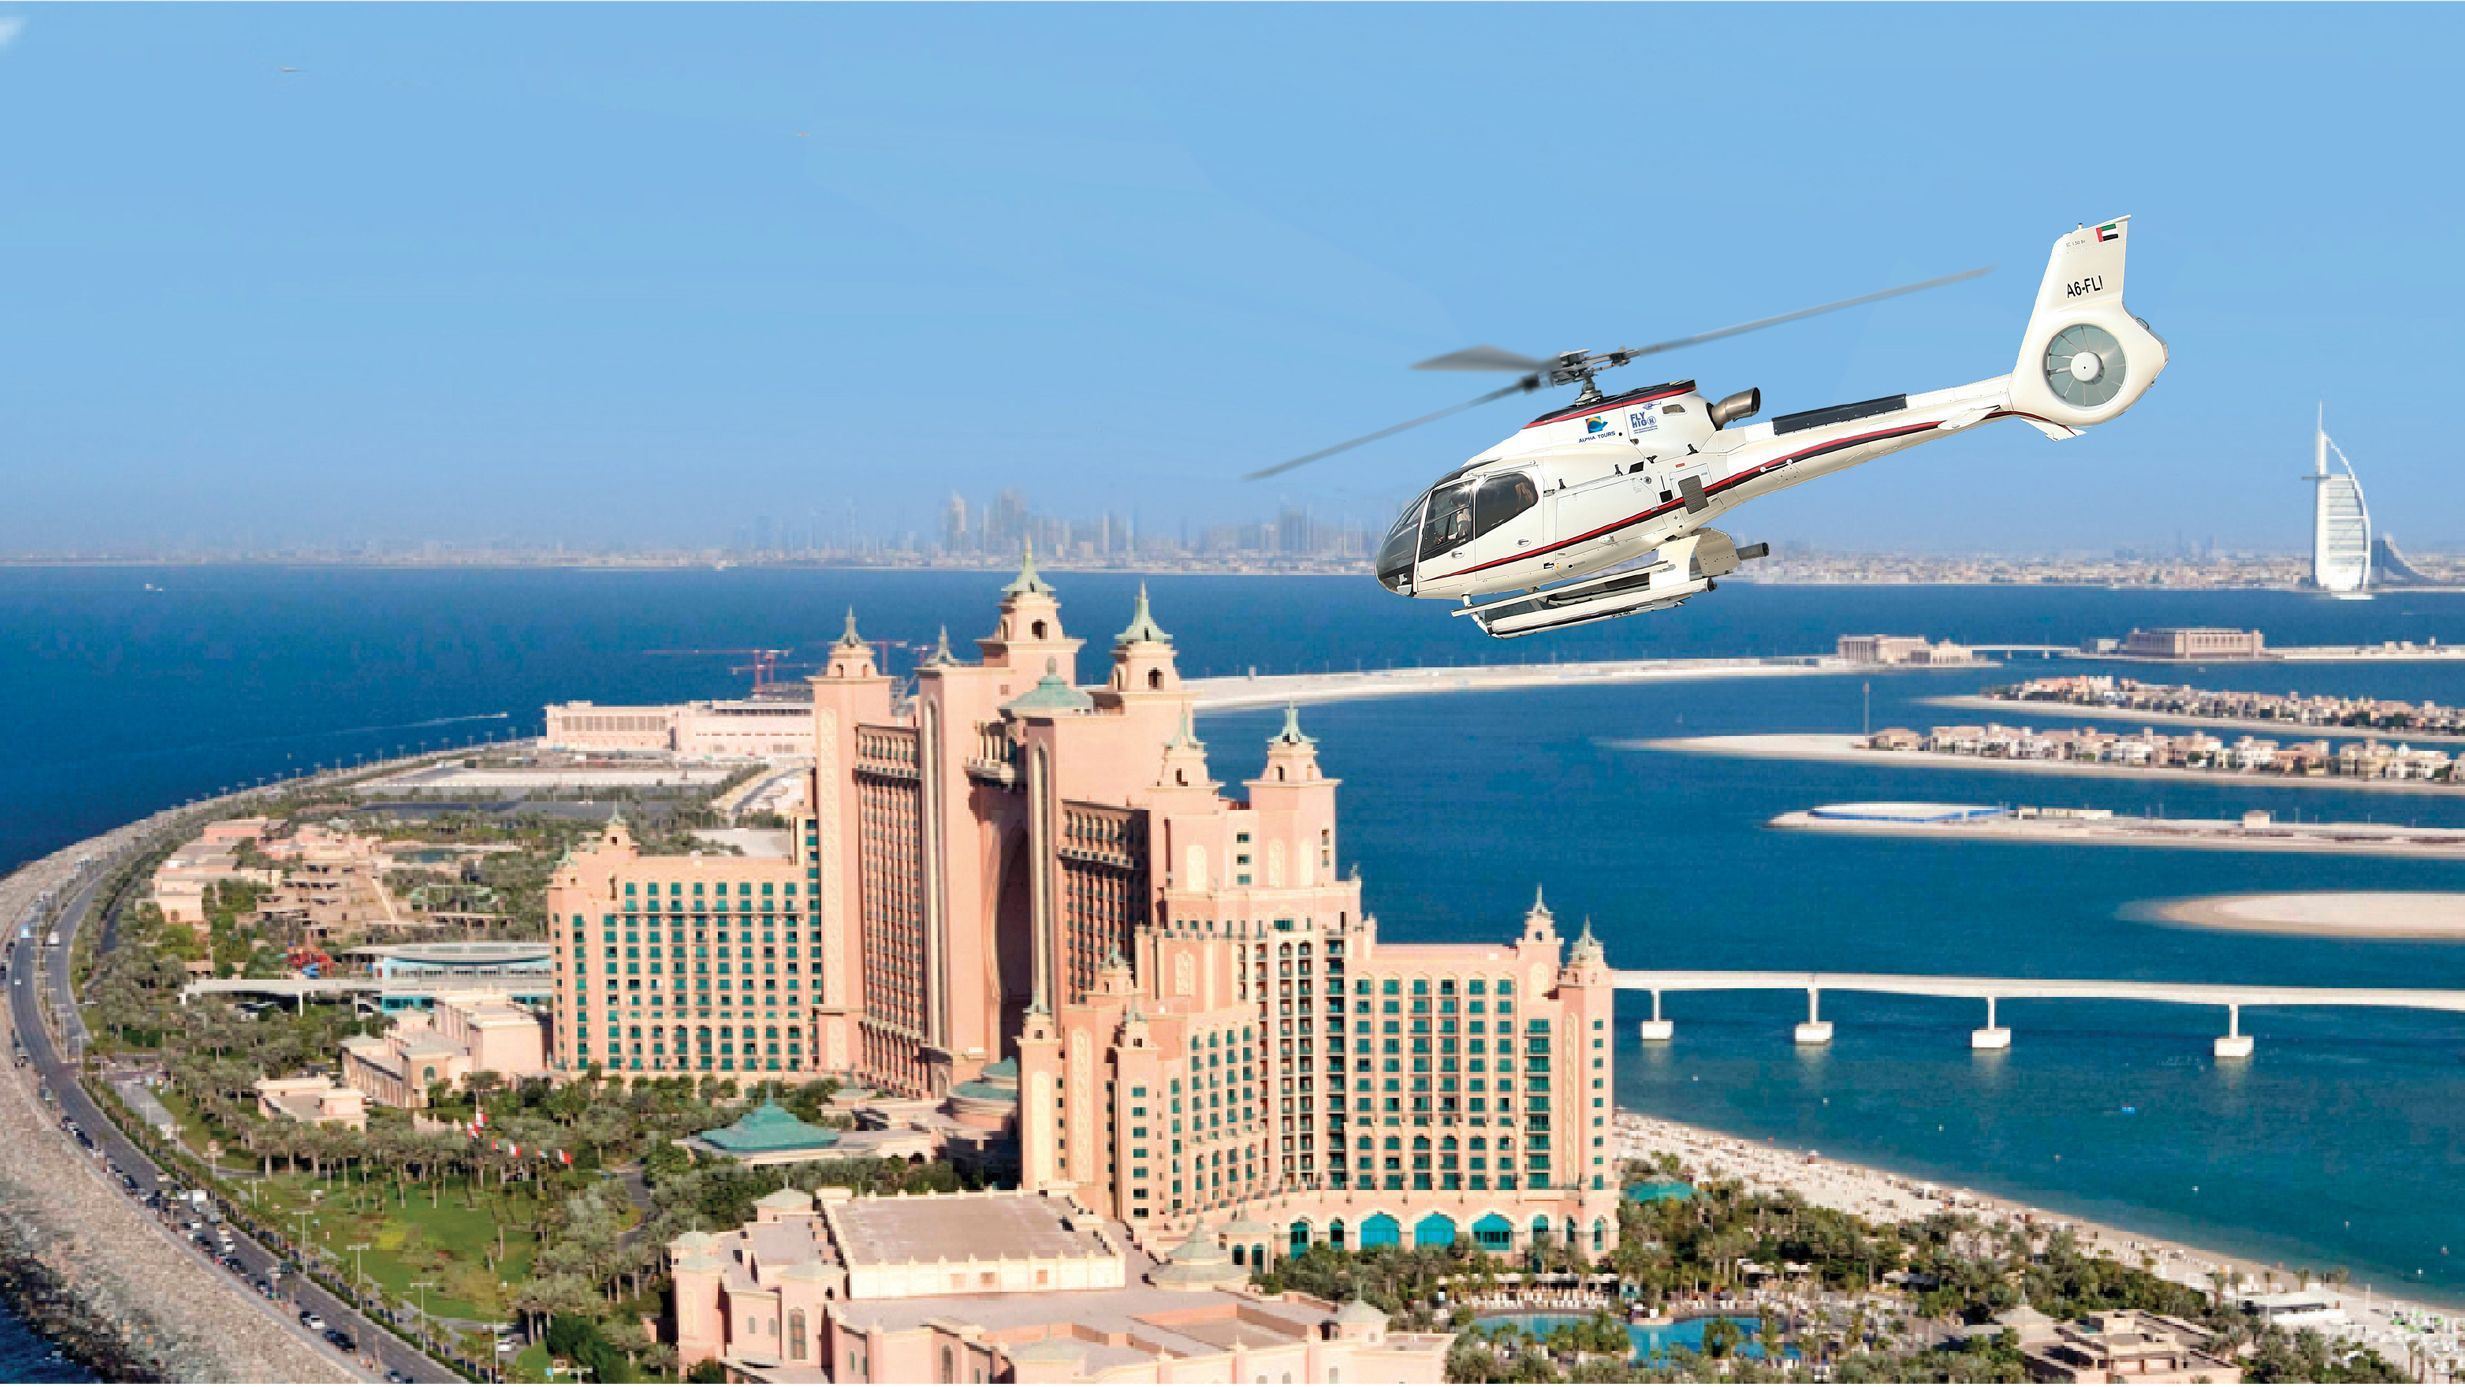 helicopter flying above Atlantis hotel in Dubai